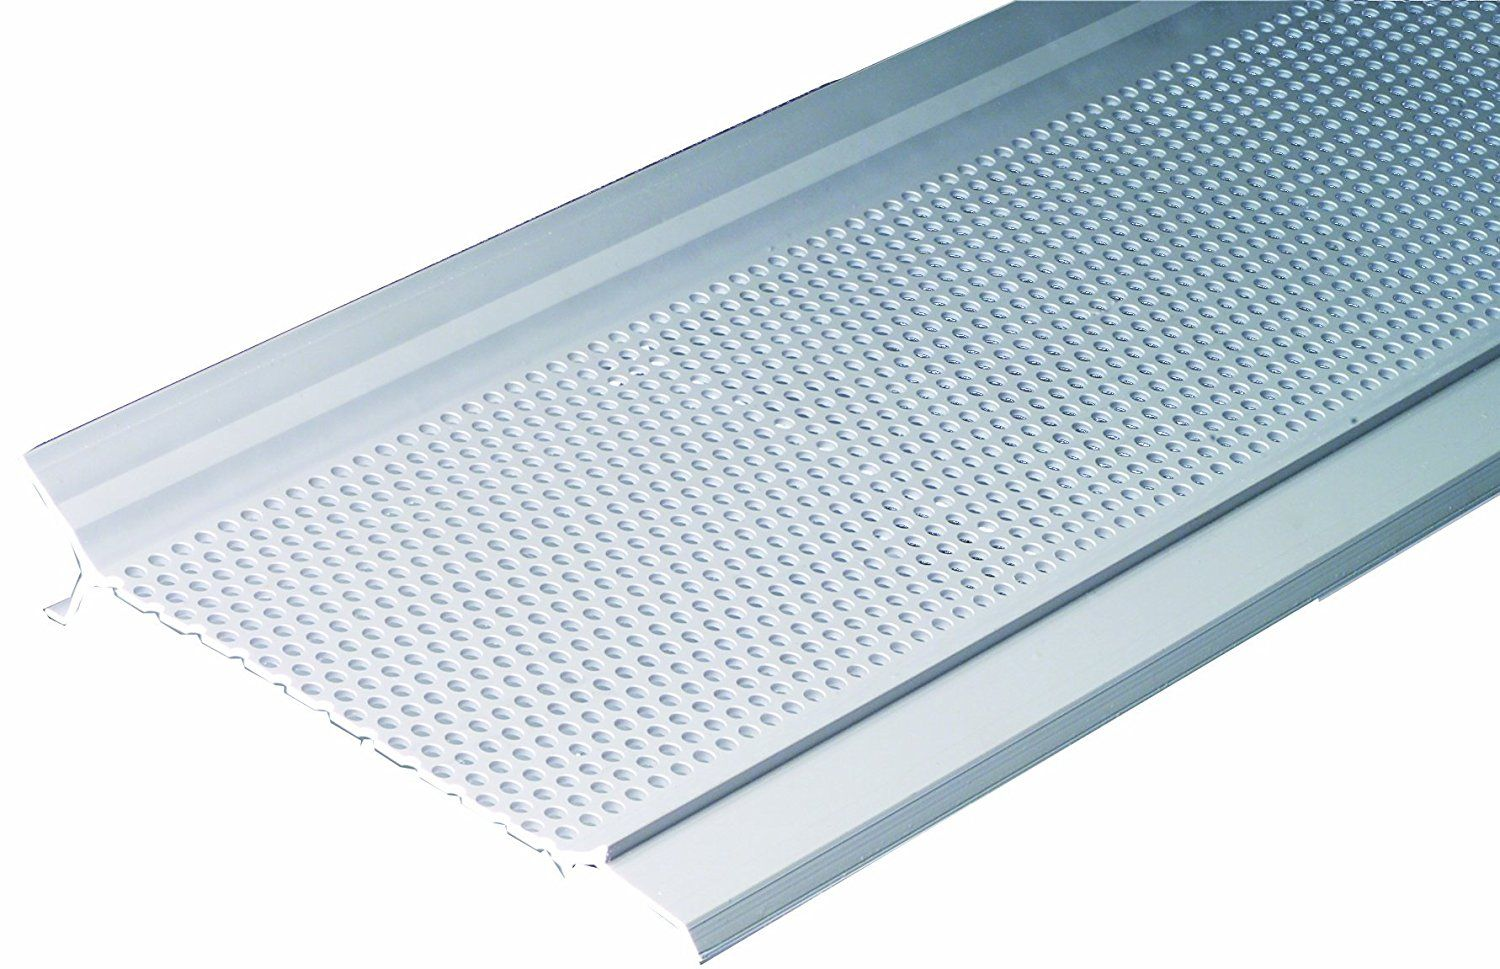 Gutter Guard Pro Gg5w 1 12 Foot Gutter Screen System Snap In Cover White More Info Could Be Found At The Image Url Gutter Screens Gutter Guard Gutter